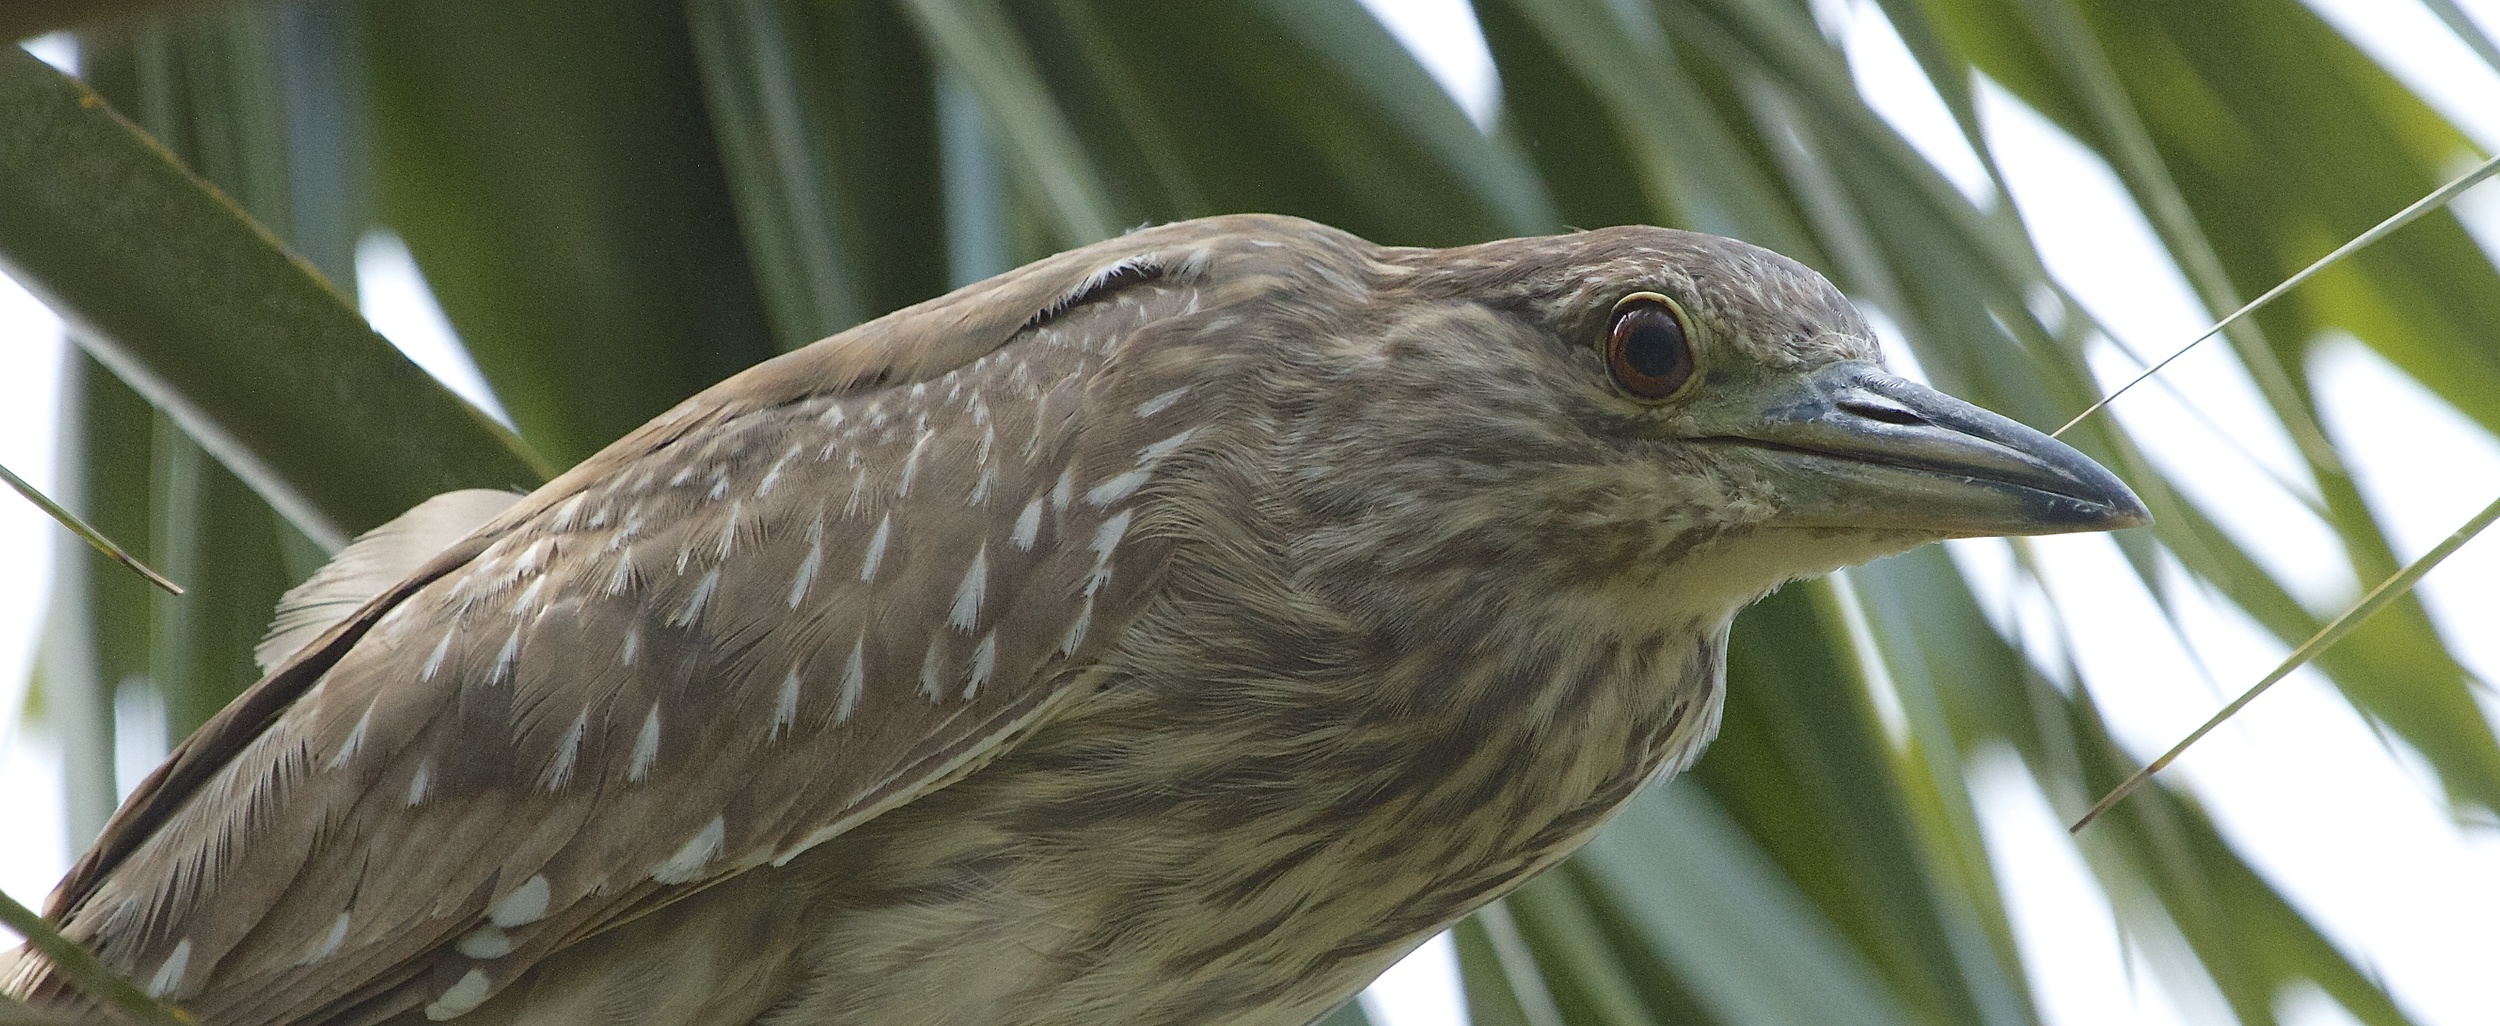 Juvenile Black-crowned Night-Heron with brown streaked feathers.